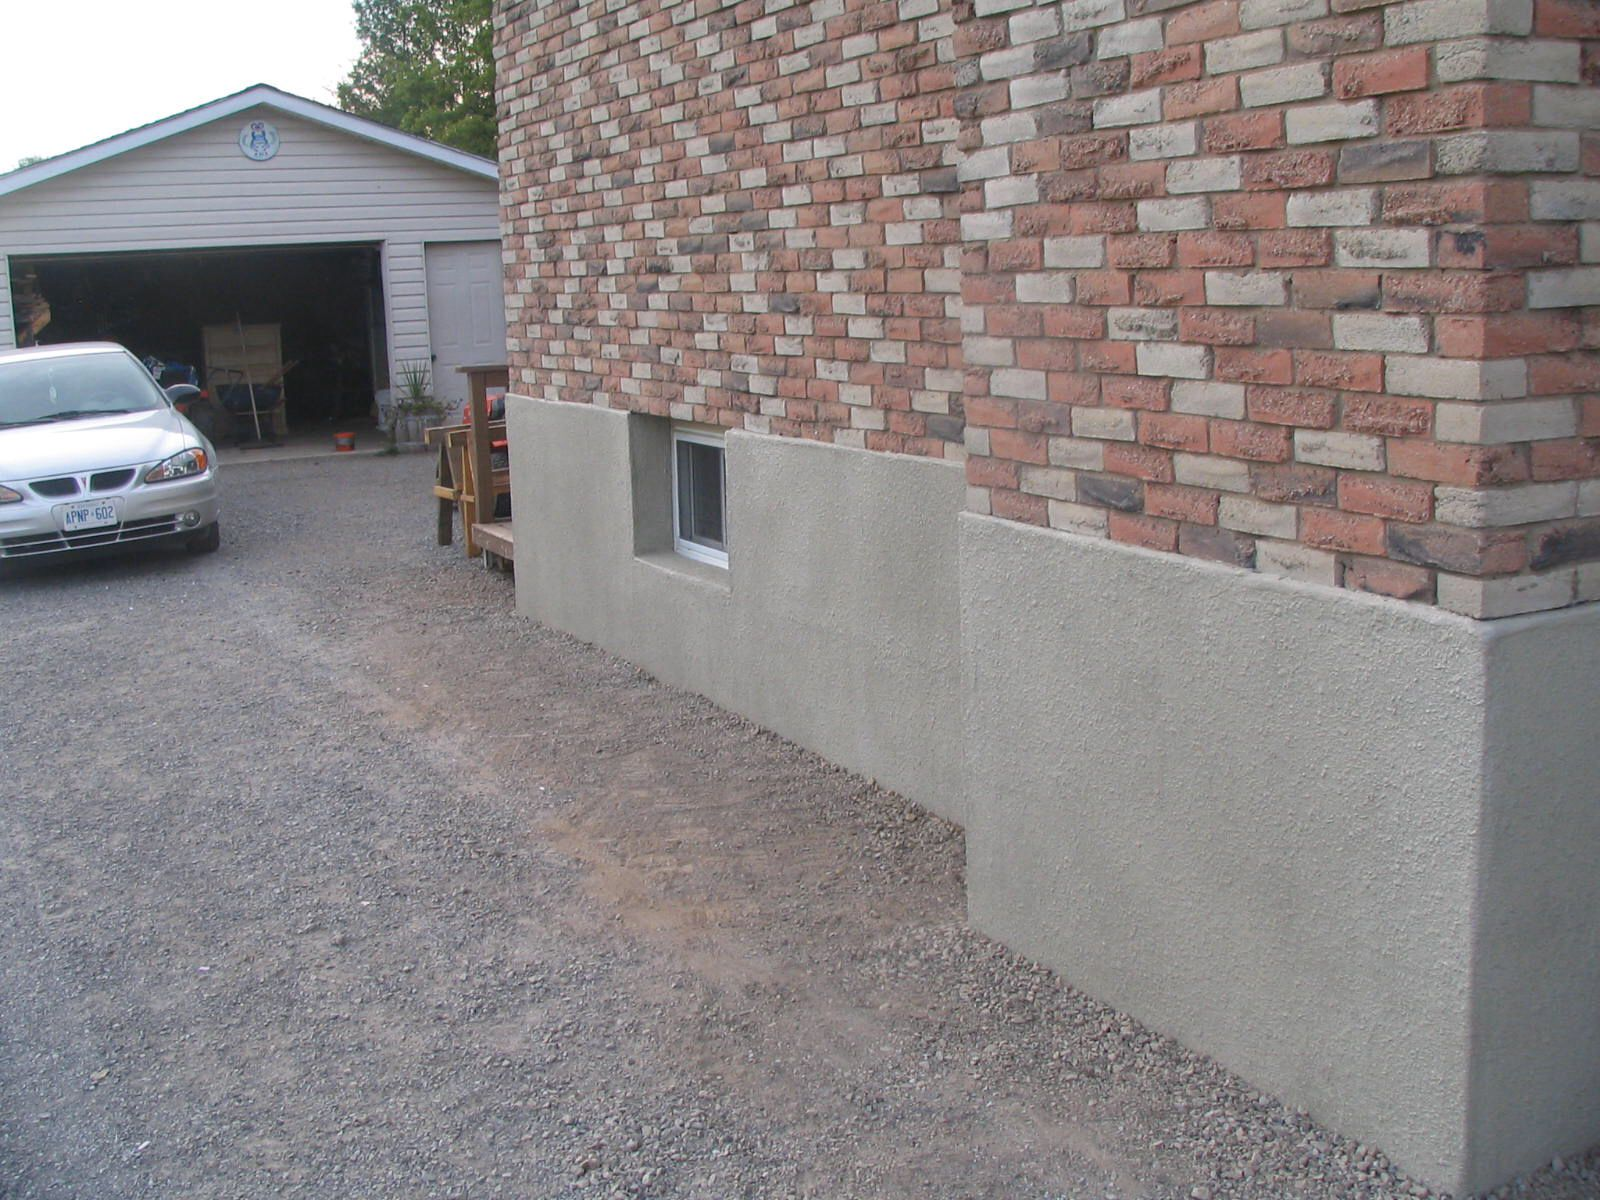 Parging Applying A Mortar Coat To Control Leakage In